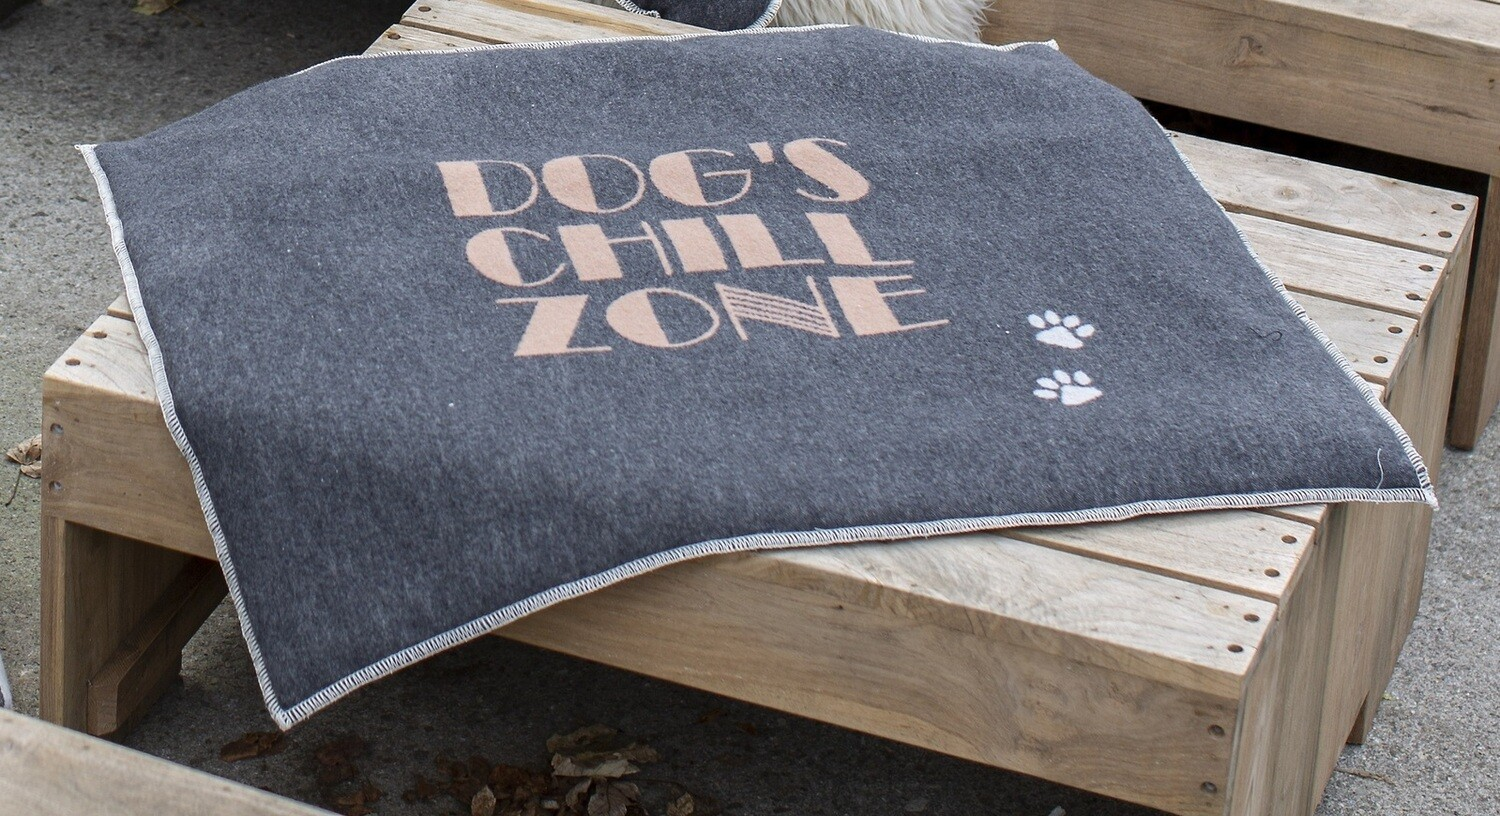 Charcoal Dog's Chill Zone Mat